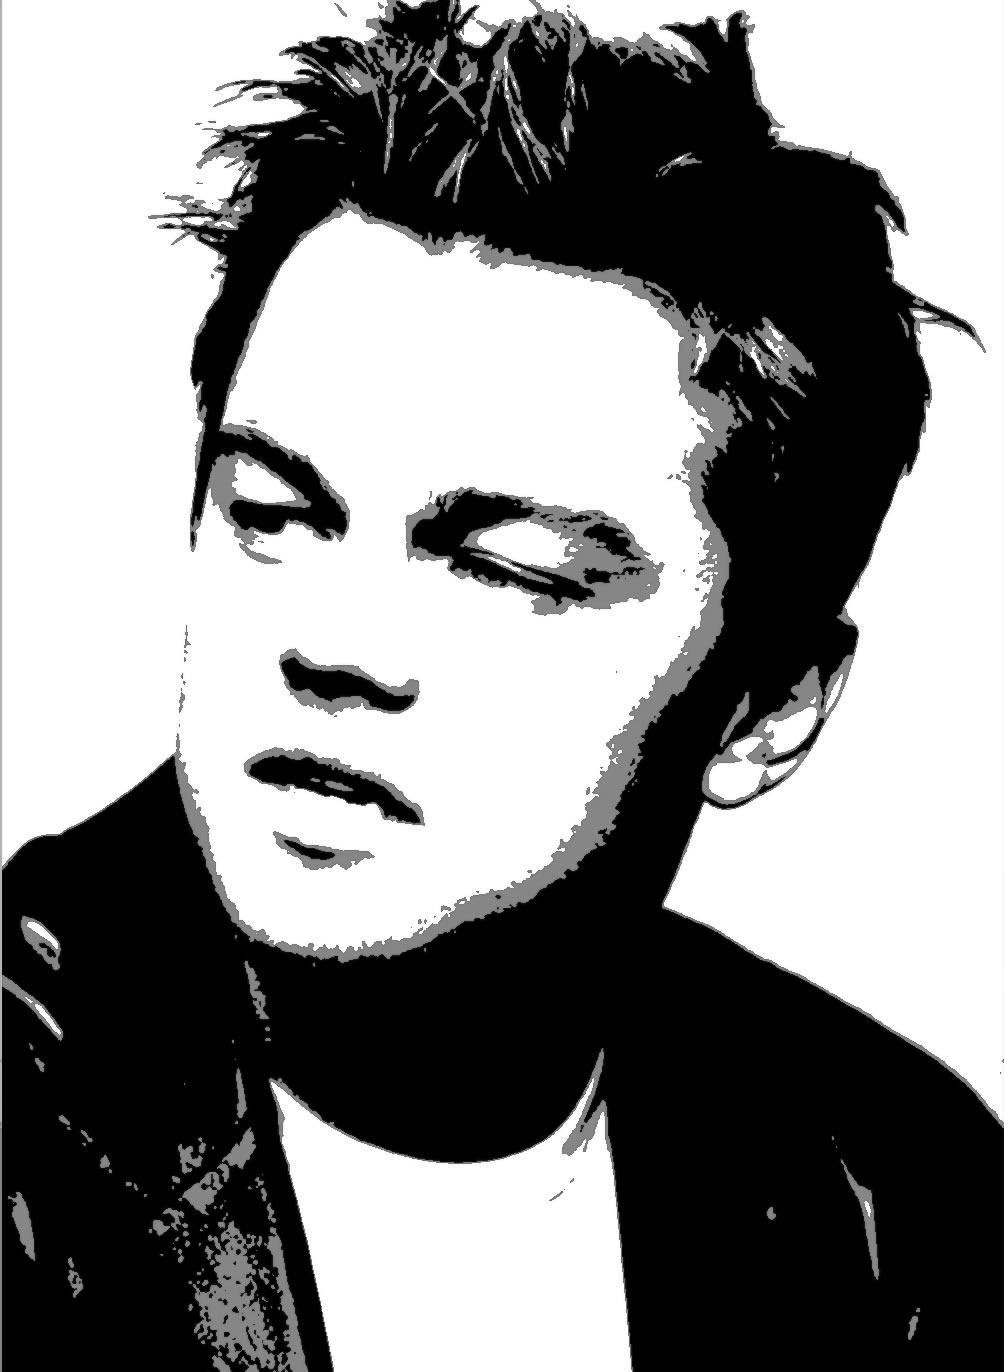 Leonardo DiCaprio u2013 Stencil For Canvas u2013 BW | William Bougie u003d Never Bored